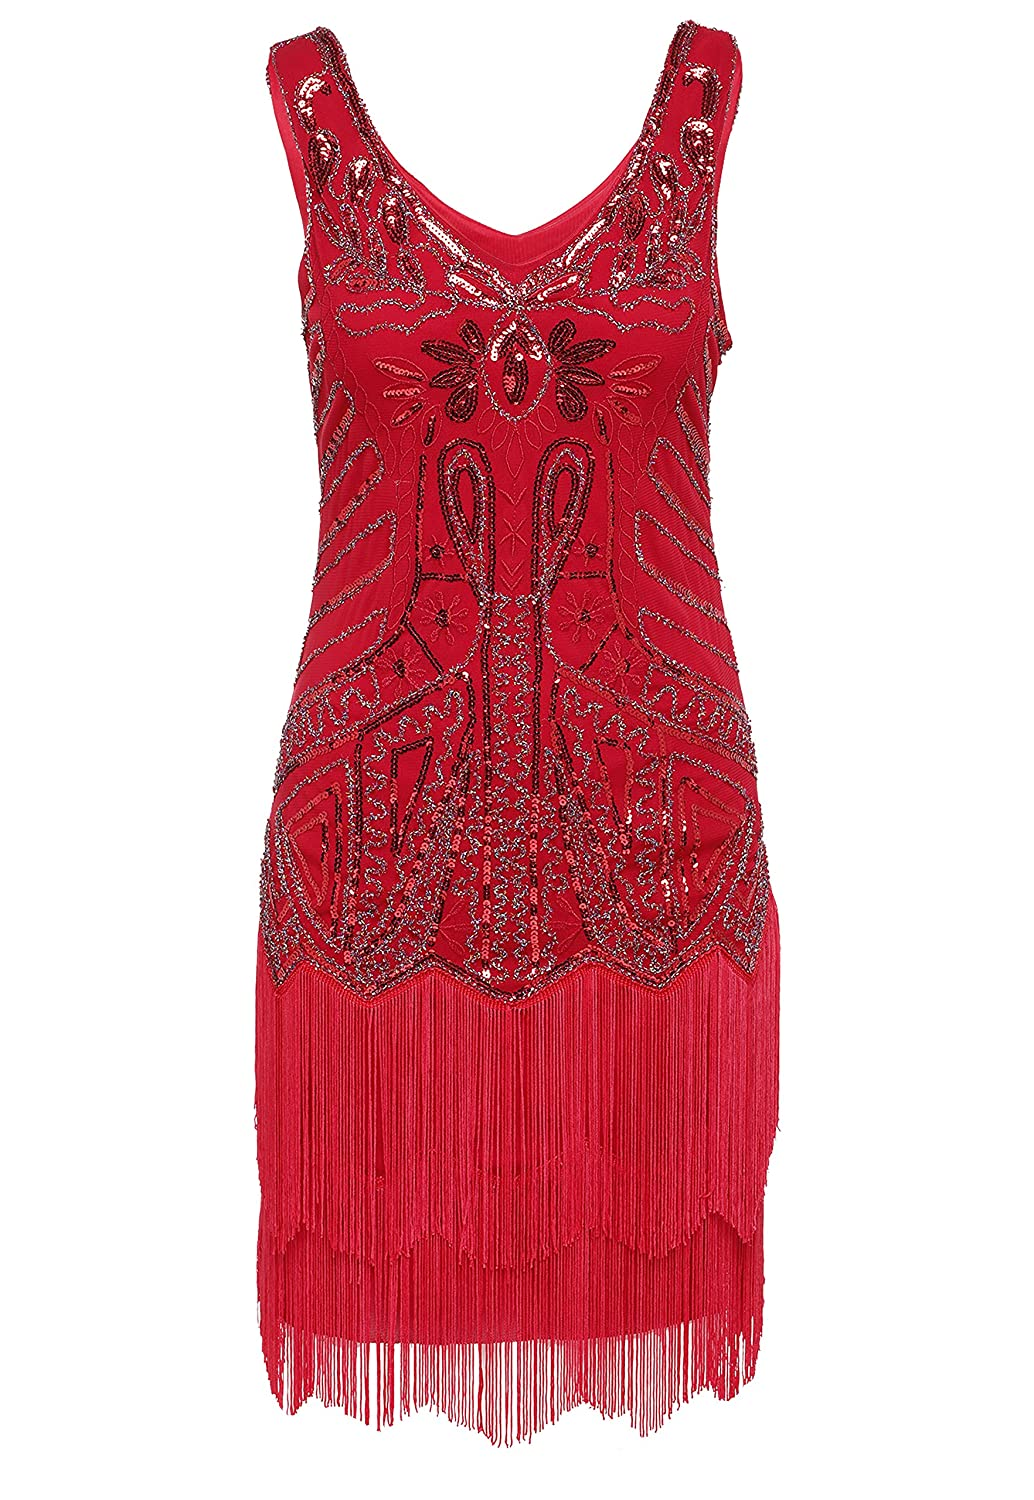 Roaring 20s Costumes- Flapper Costumes, Gangster Costumes BABEYOND Womens Flapper Dresses 1920s V Neck Beaded Fringed Great Gatsby Dress $28.99 AT vintagedancer.com